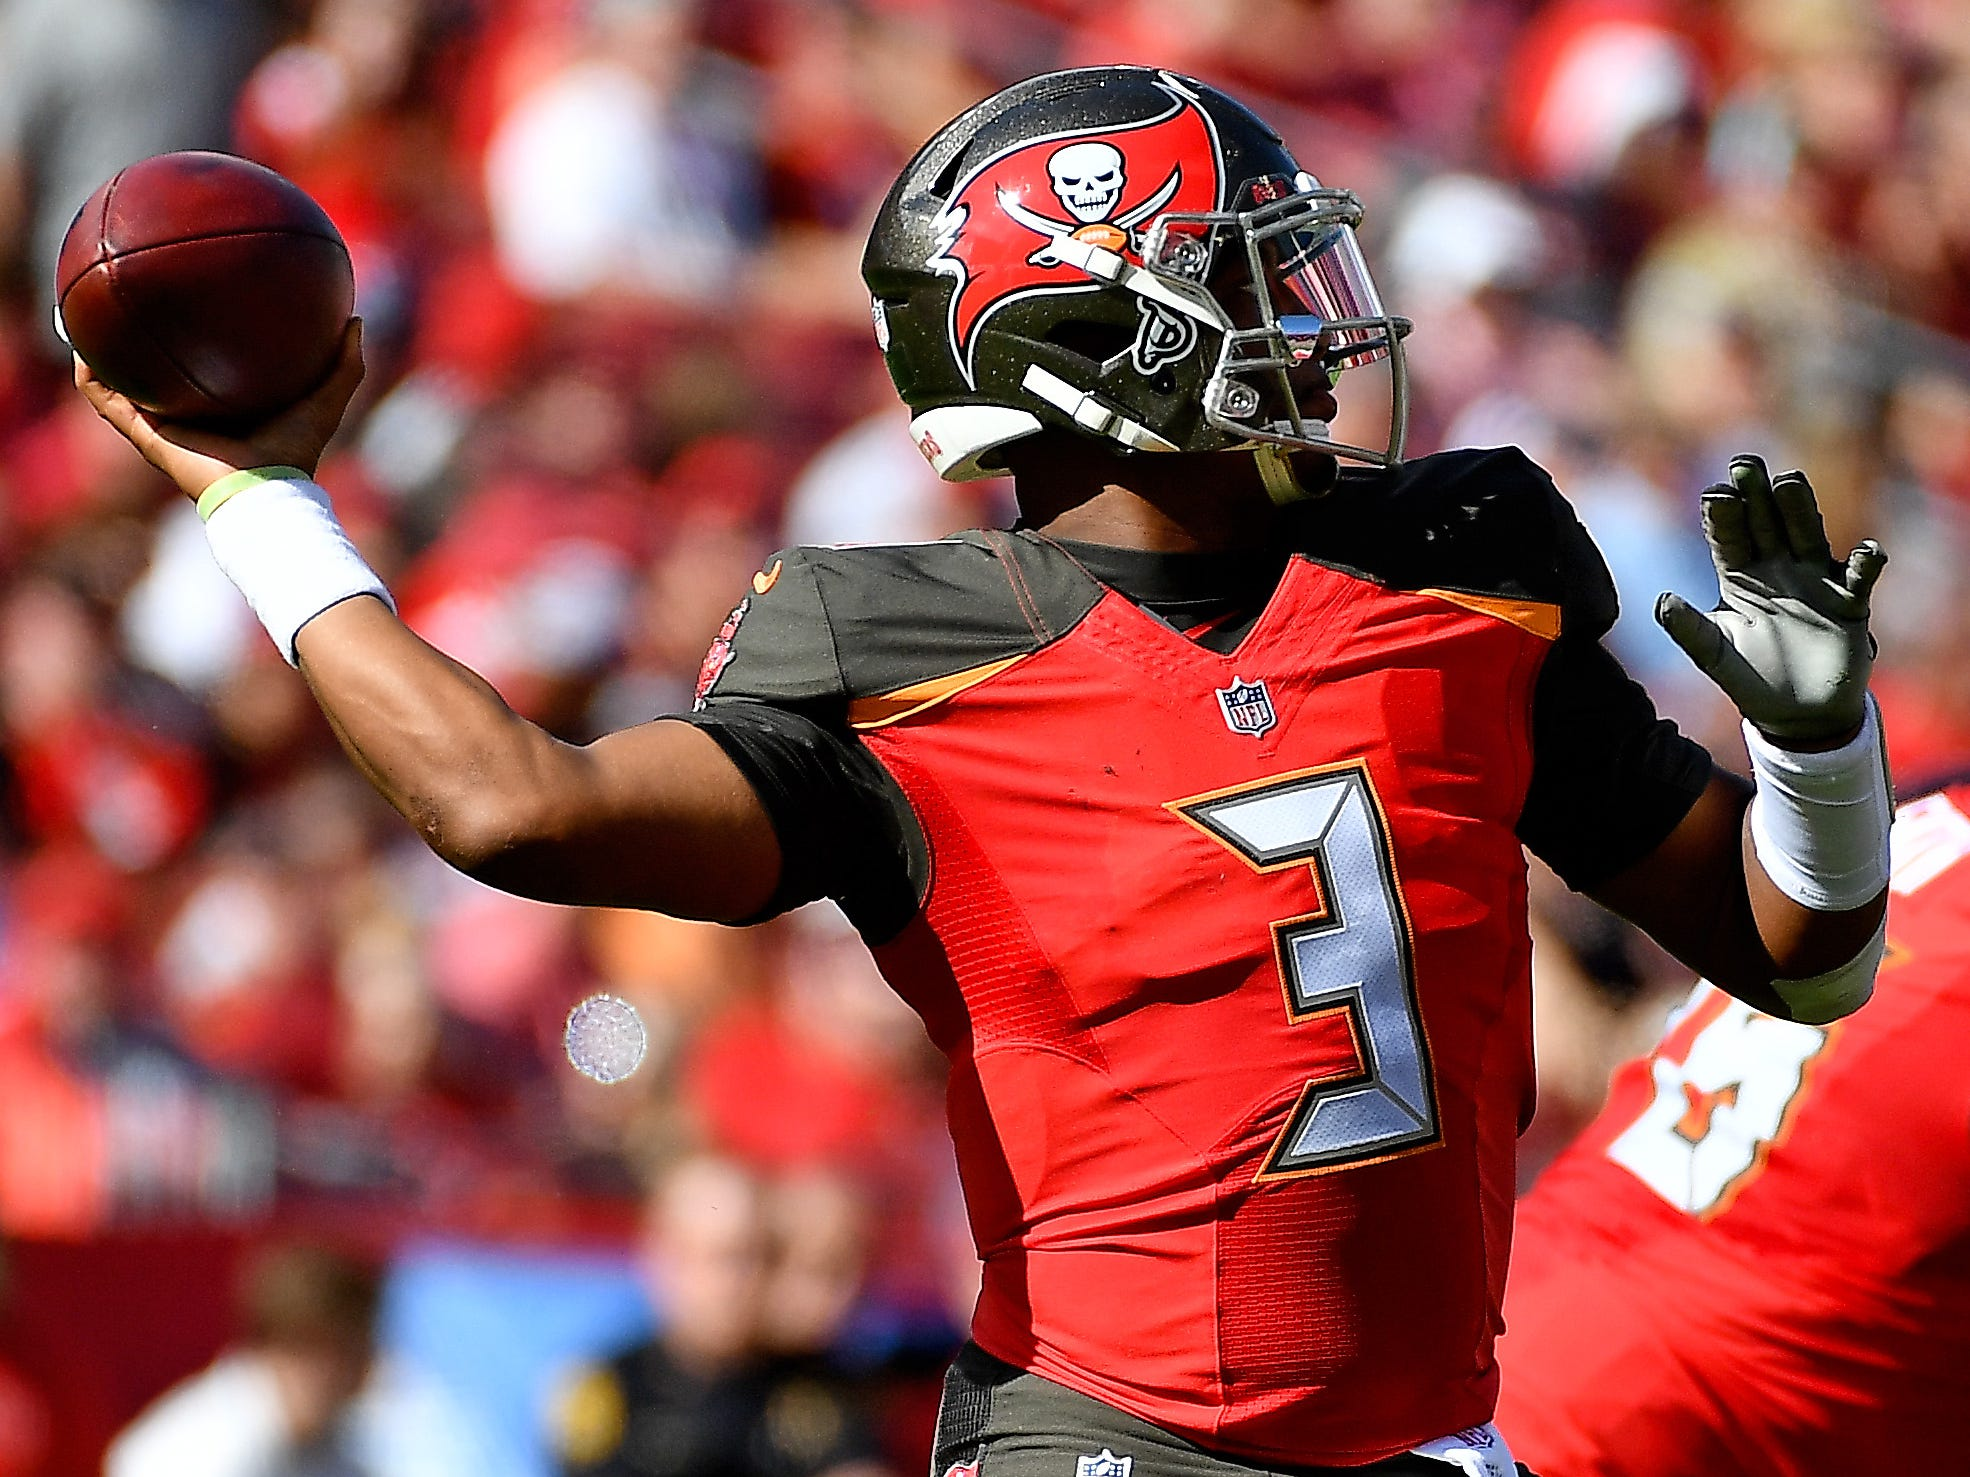 18. Buccaneers (29): If Bruce Arians can harness Jameis Winston's ability and Todd Bowles can ignite defense, these could be your 2019 playoff dark horses.